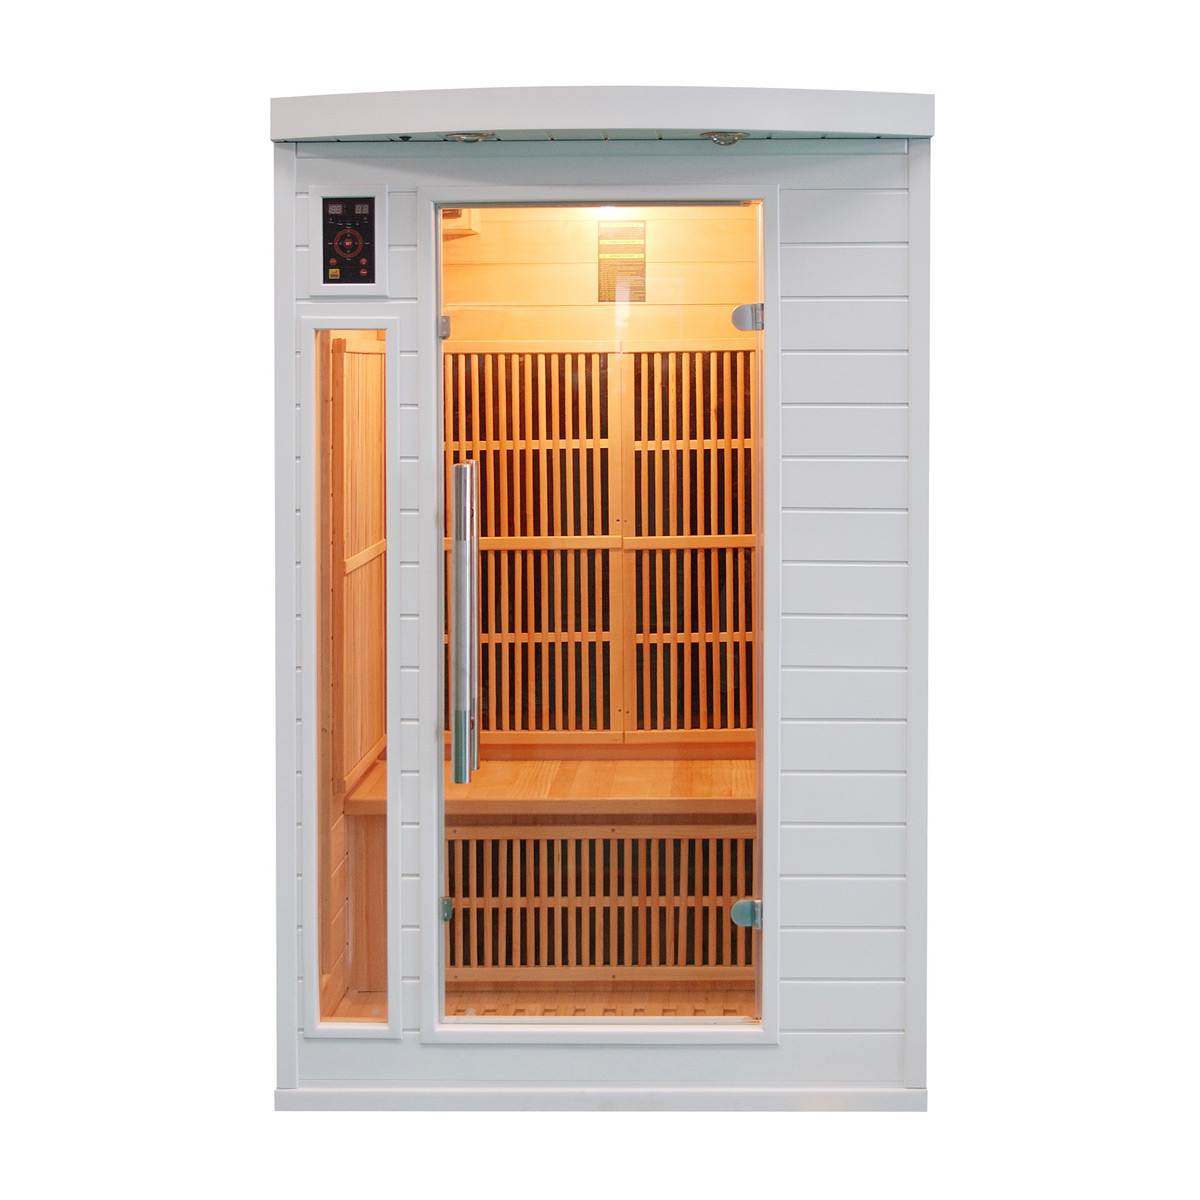 Sauna infrarouge soleil blanc 2 places france sauna - Sauna infrarouge 3 places ...